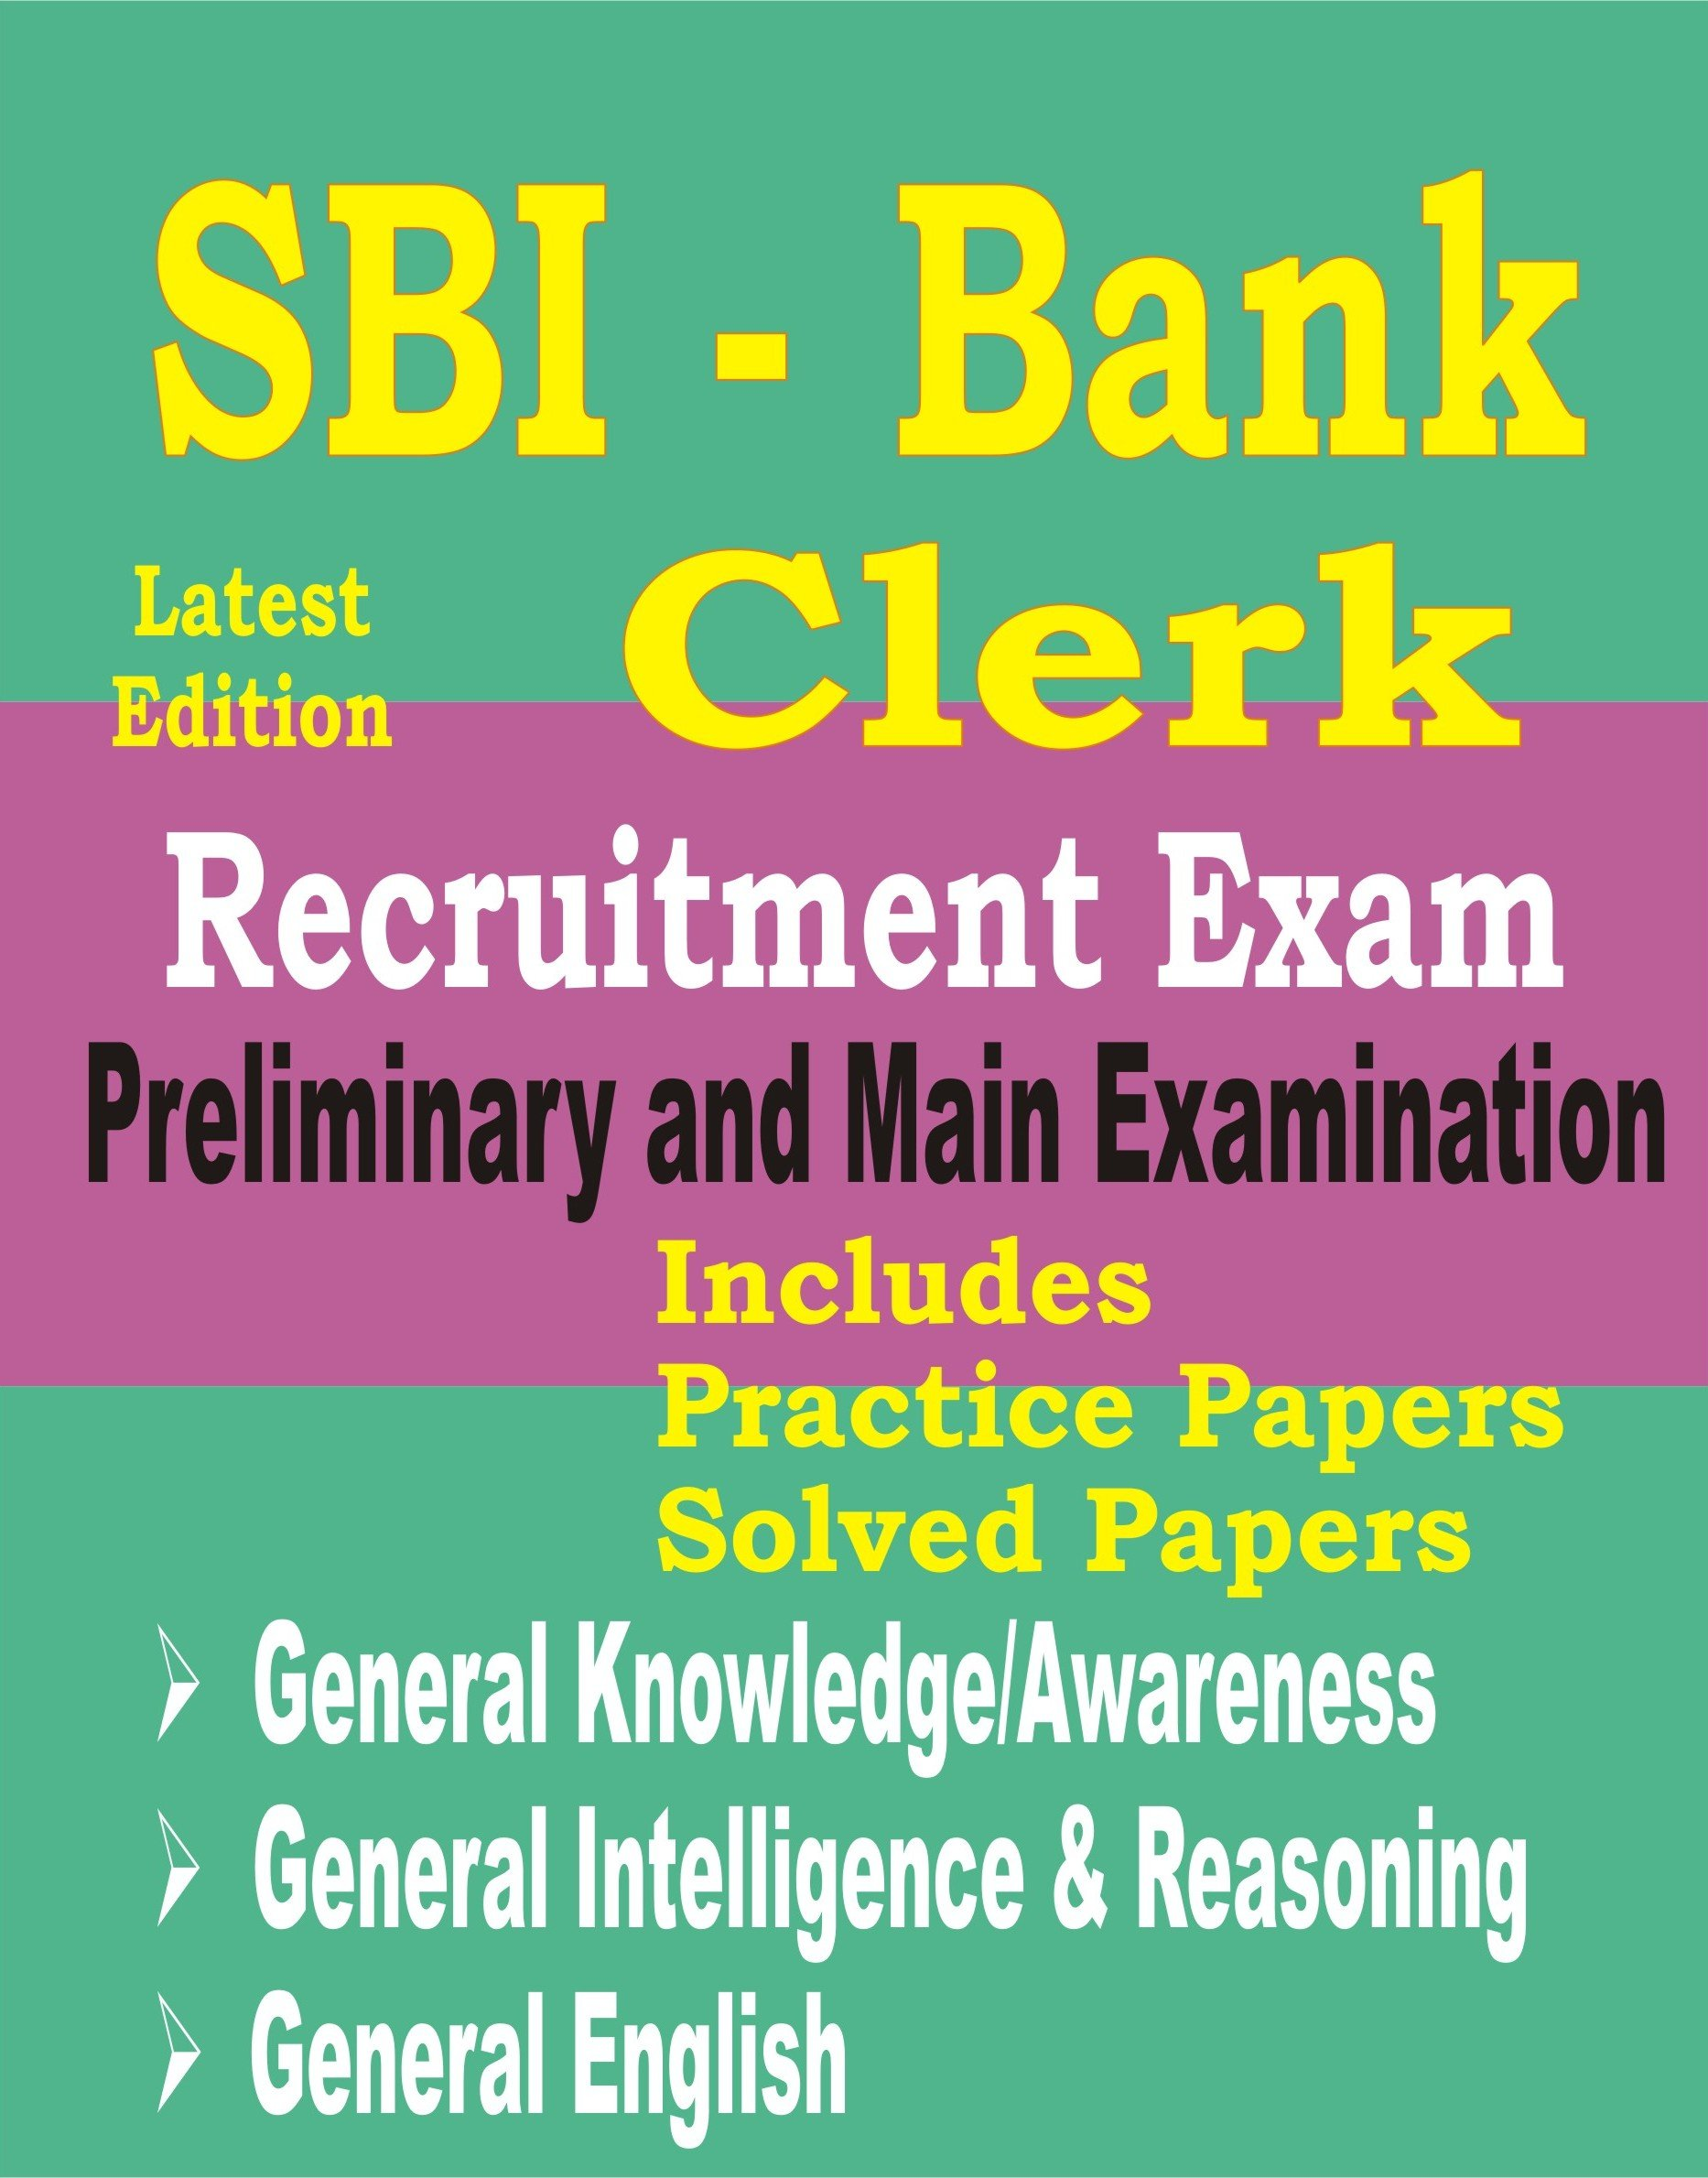 buy sbi bank clerk 2018 preliminary and main exam guide solved